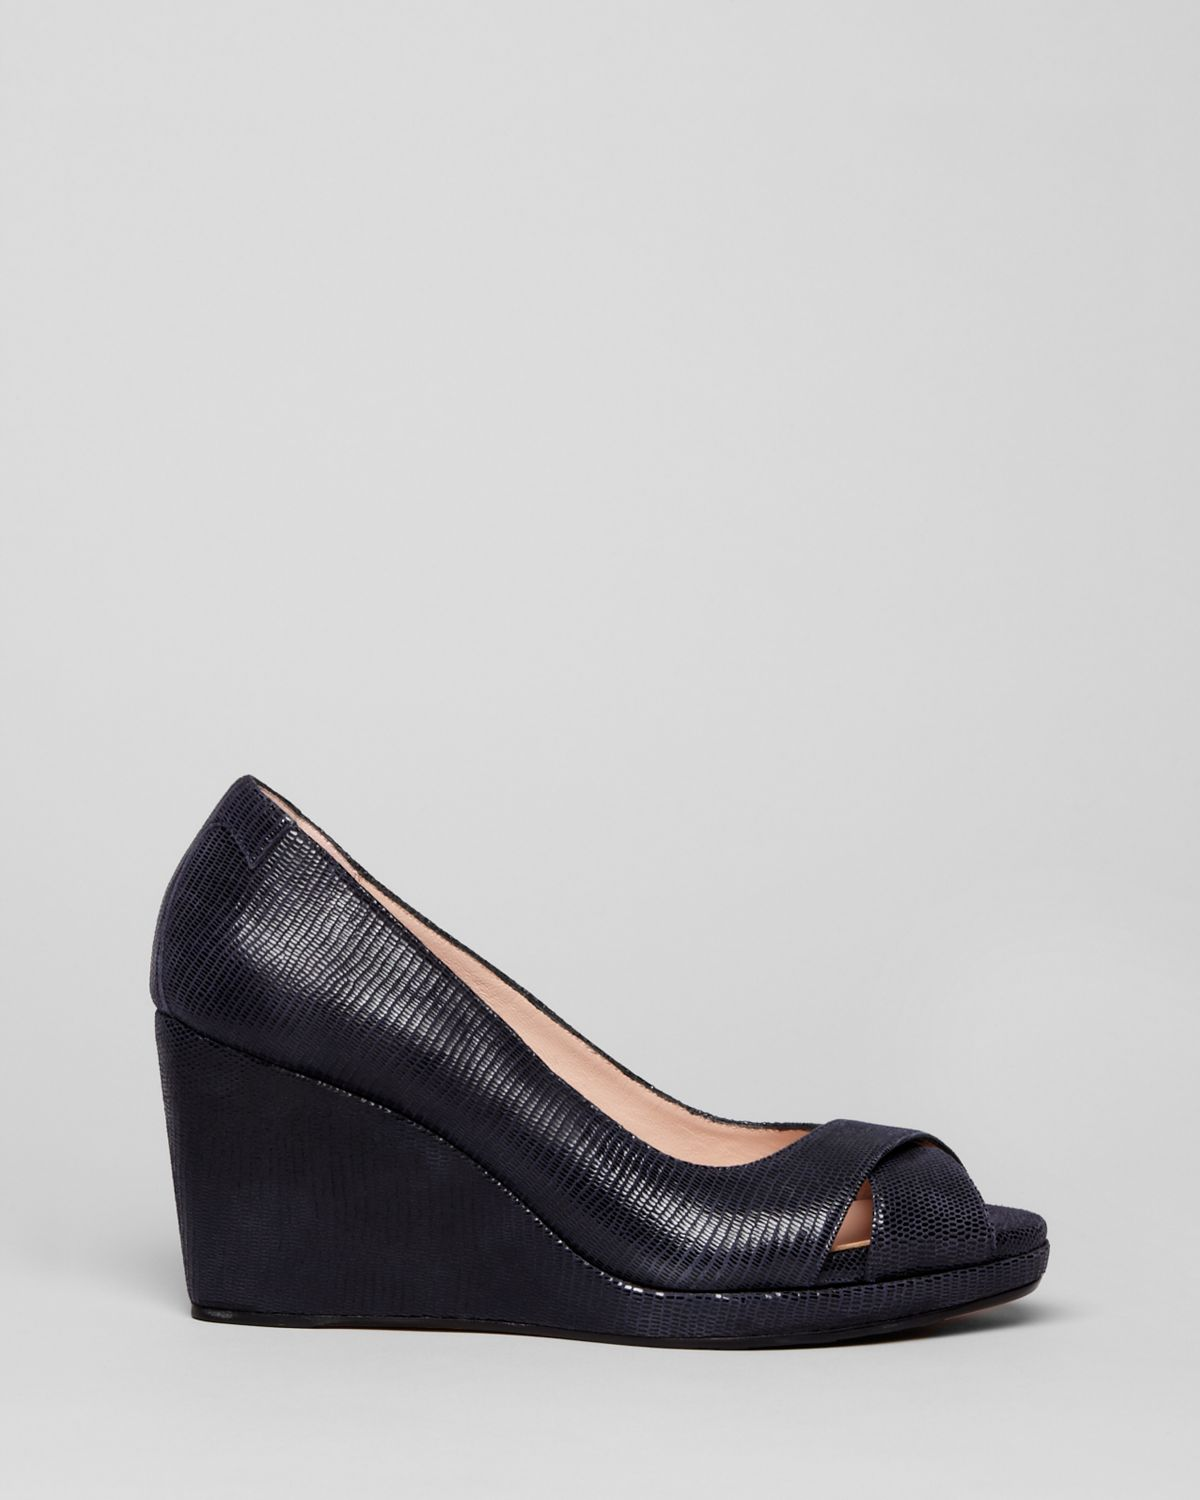 Cos Navy Wedge Platform Leather Shoes